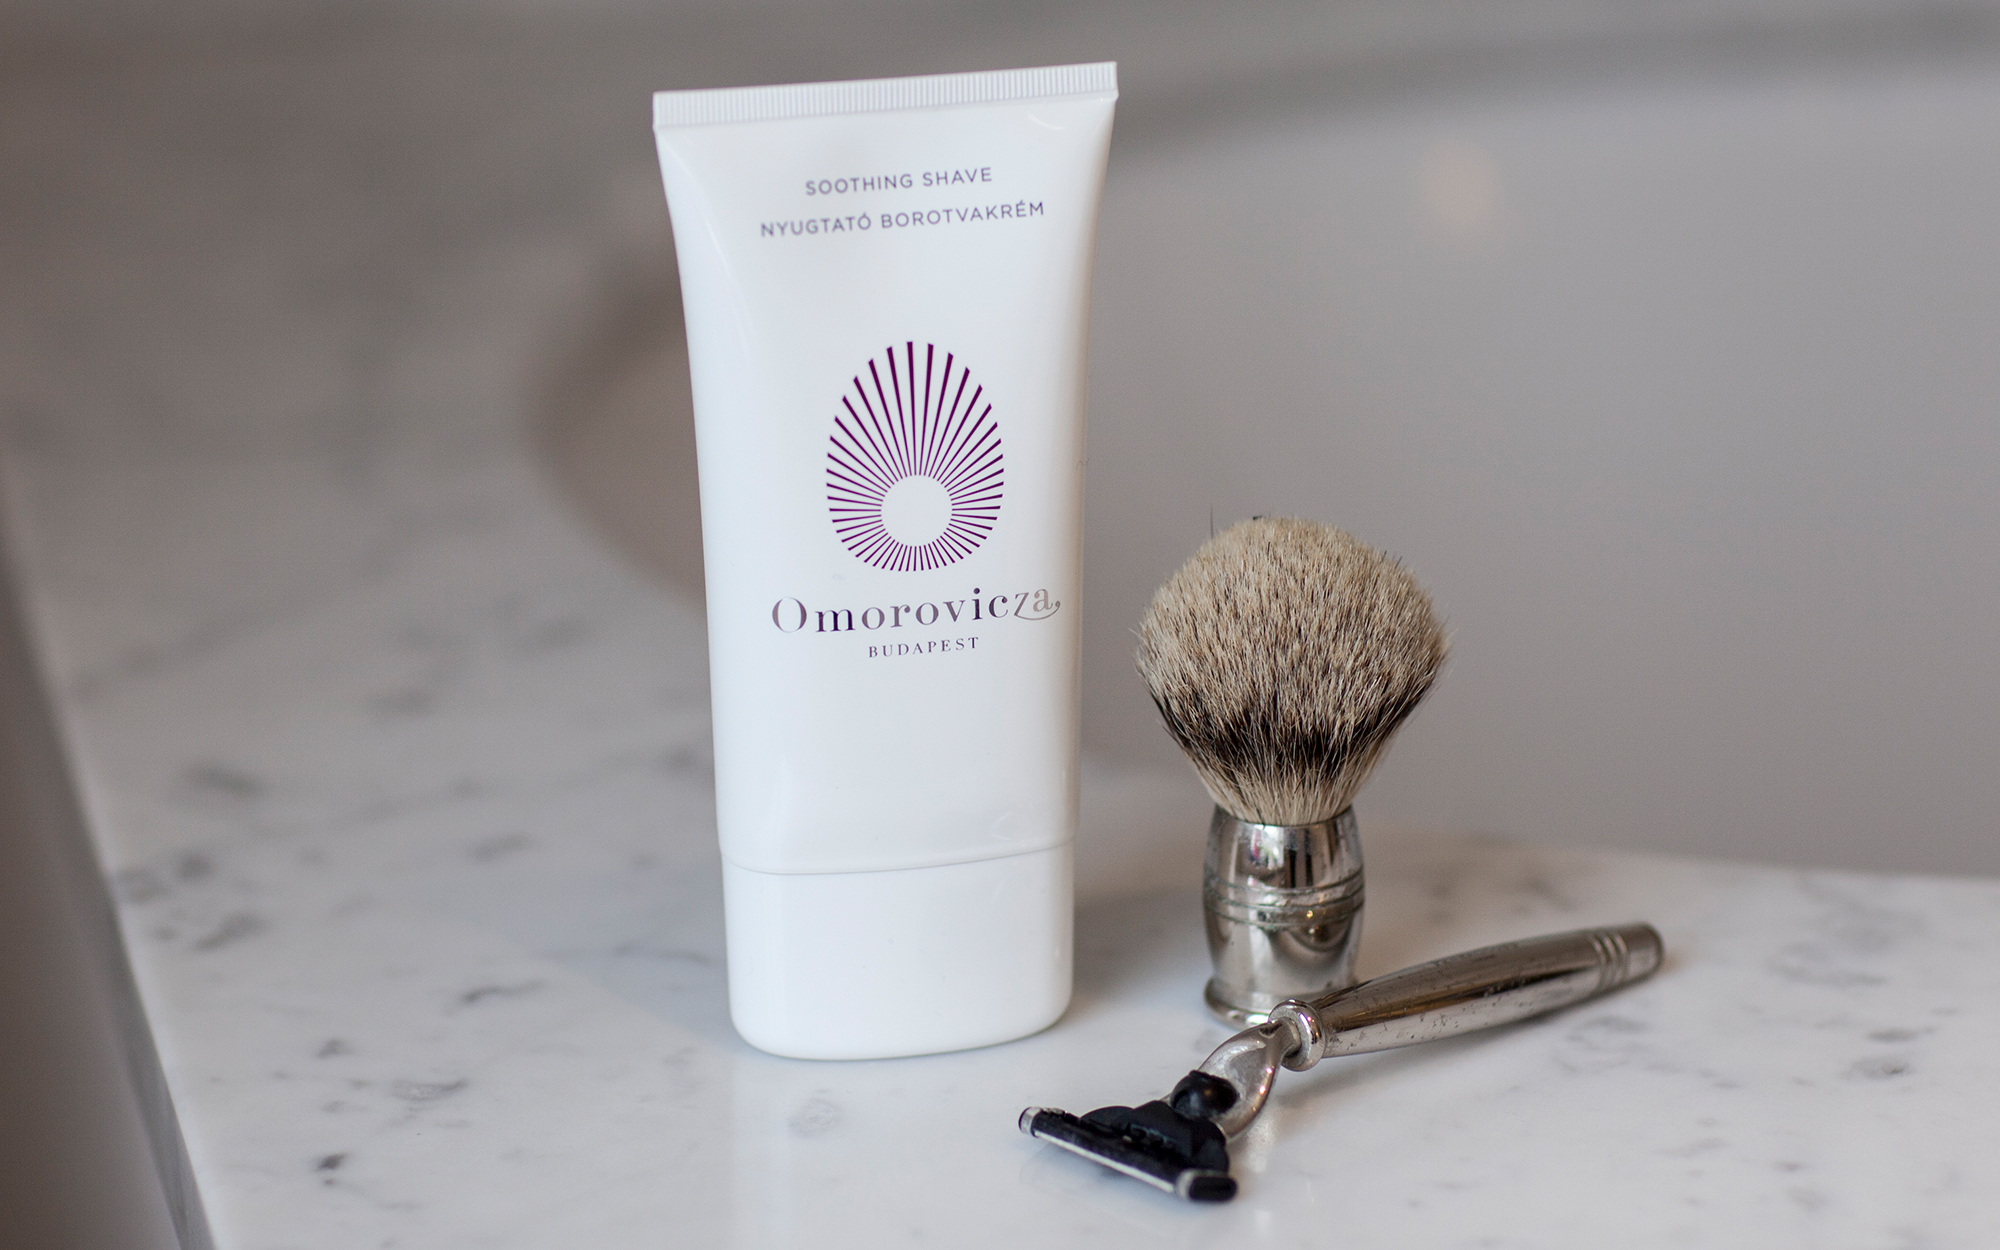 Soothing Shave